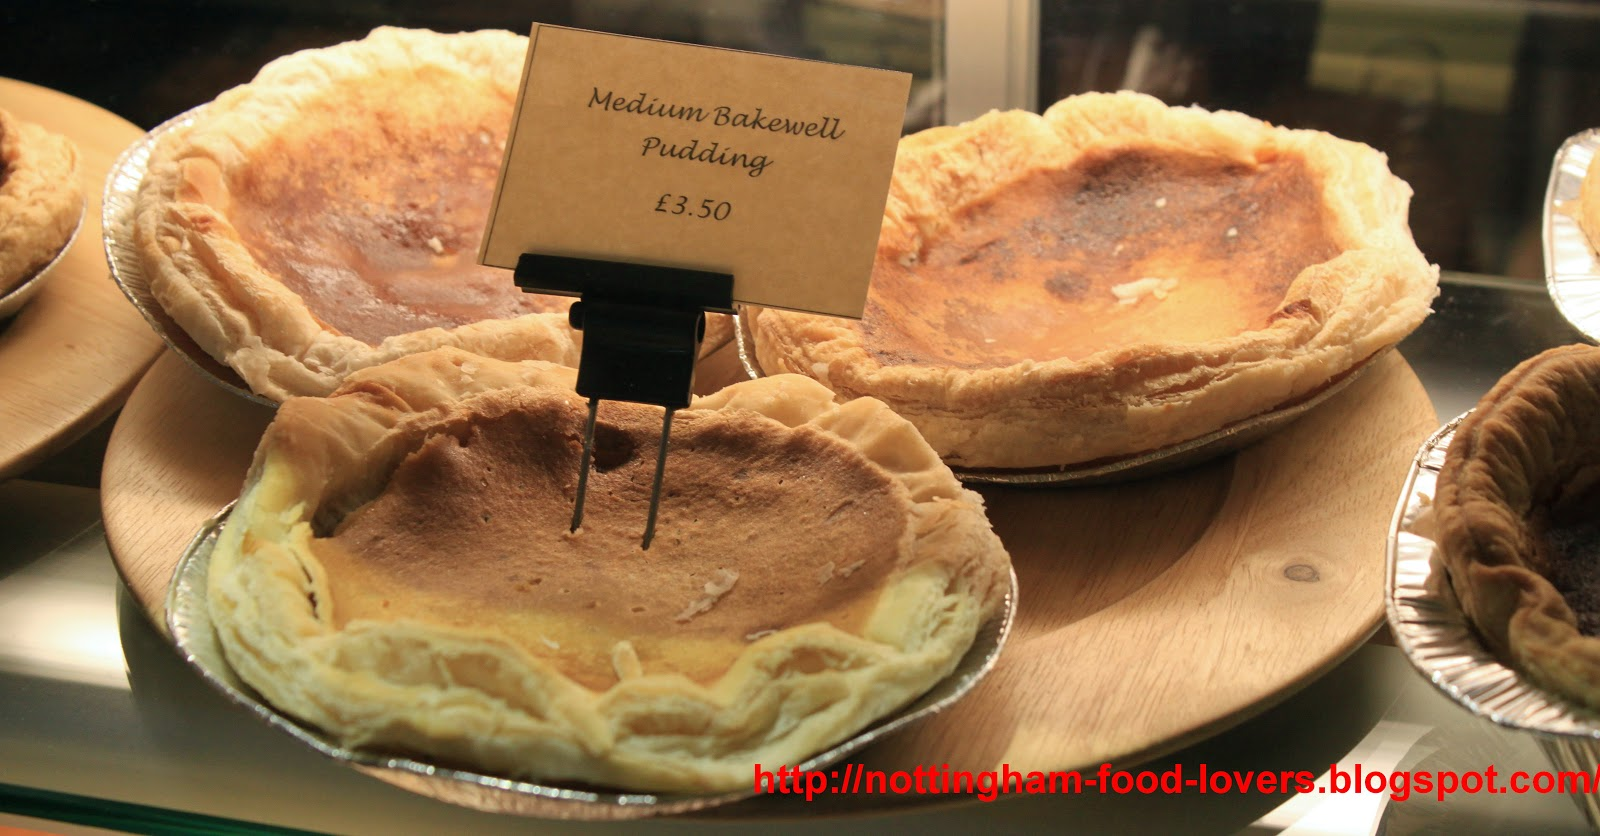 Nottingham Food Lovers: Bakewell Tart or Bakewell Pudding: Which is ...